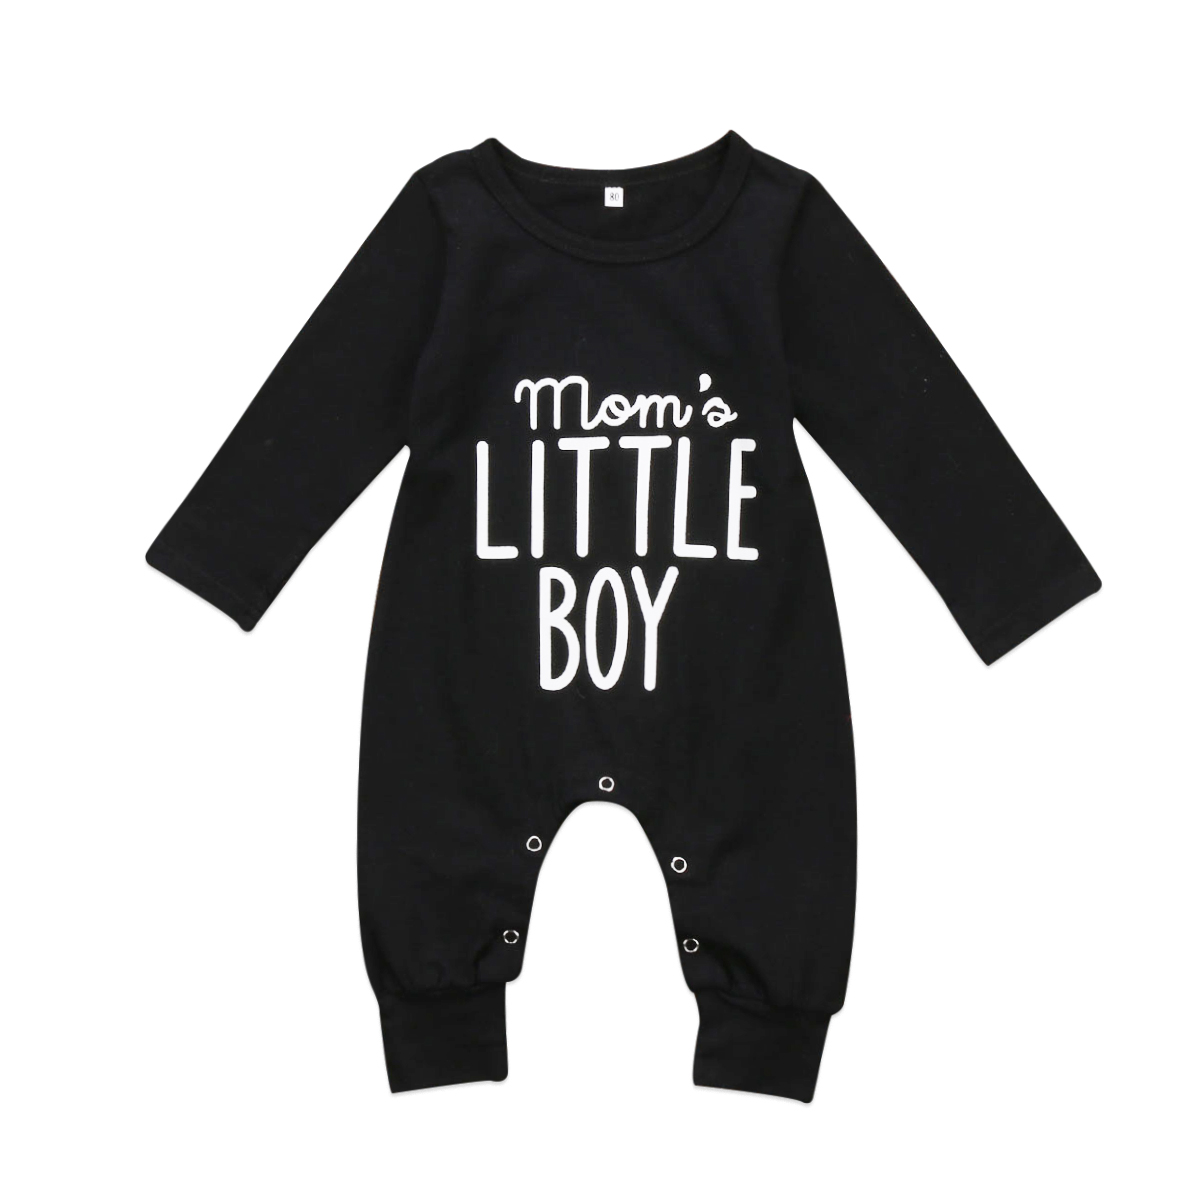 Cotton Newborn Infant Baby Boy Girl Little Boy   Romper   Jumpsuit Long Sleeve Playsuit One-Pieces Outfits Clothes